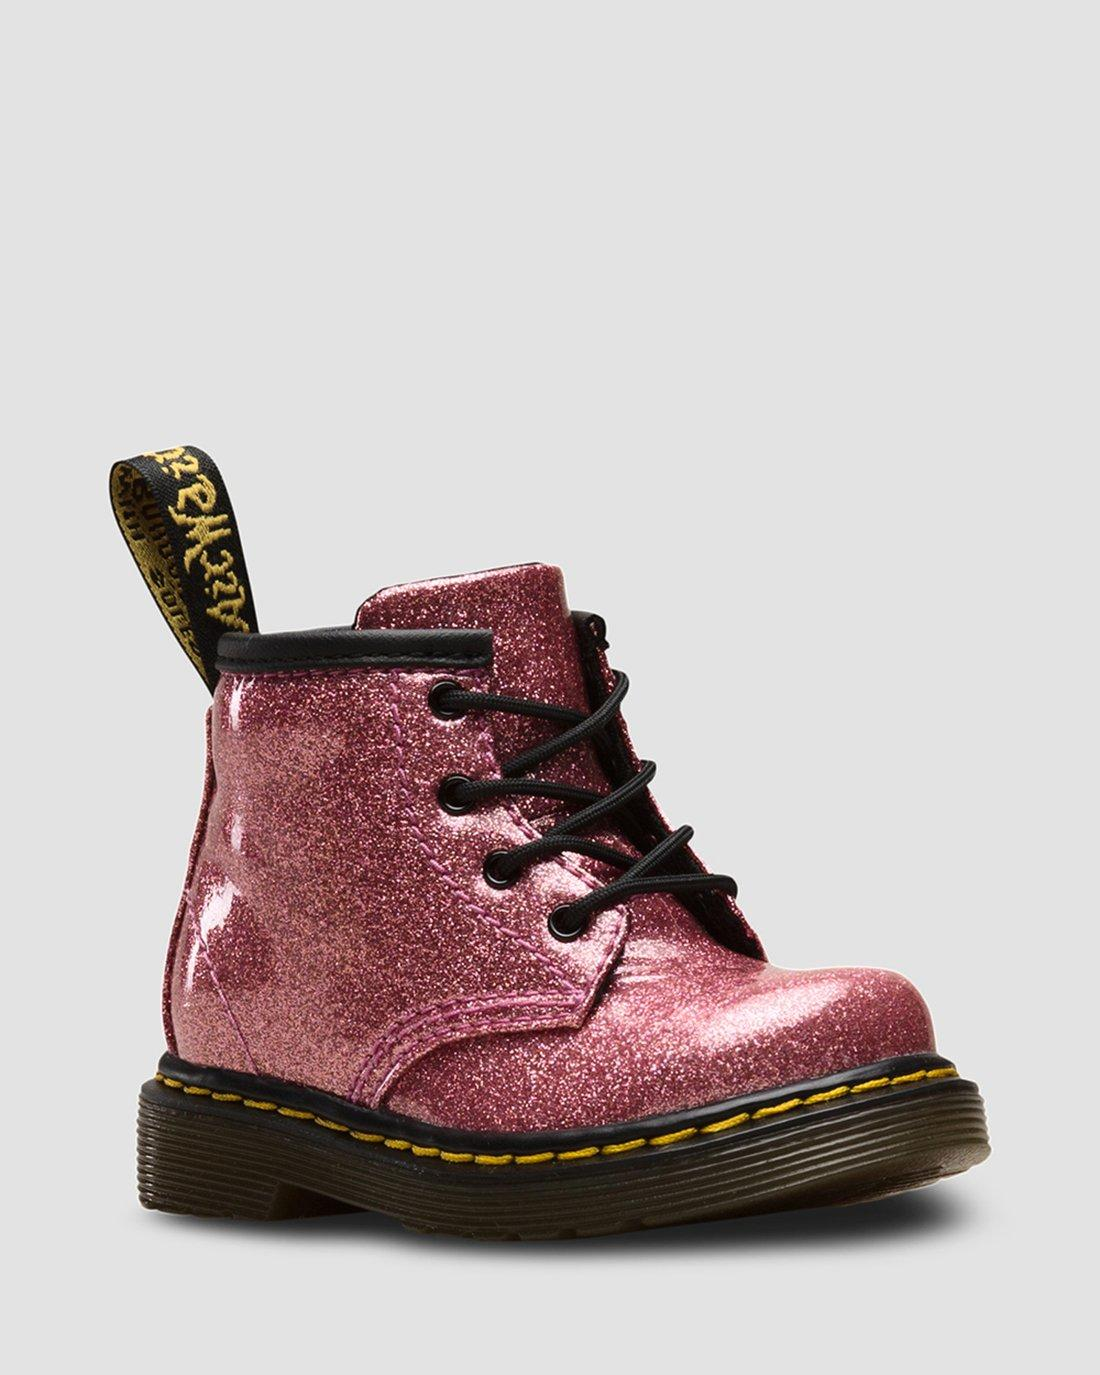 INFANT 1460 GLITTER LACE UP BOOTS   Dr